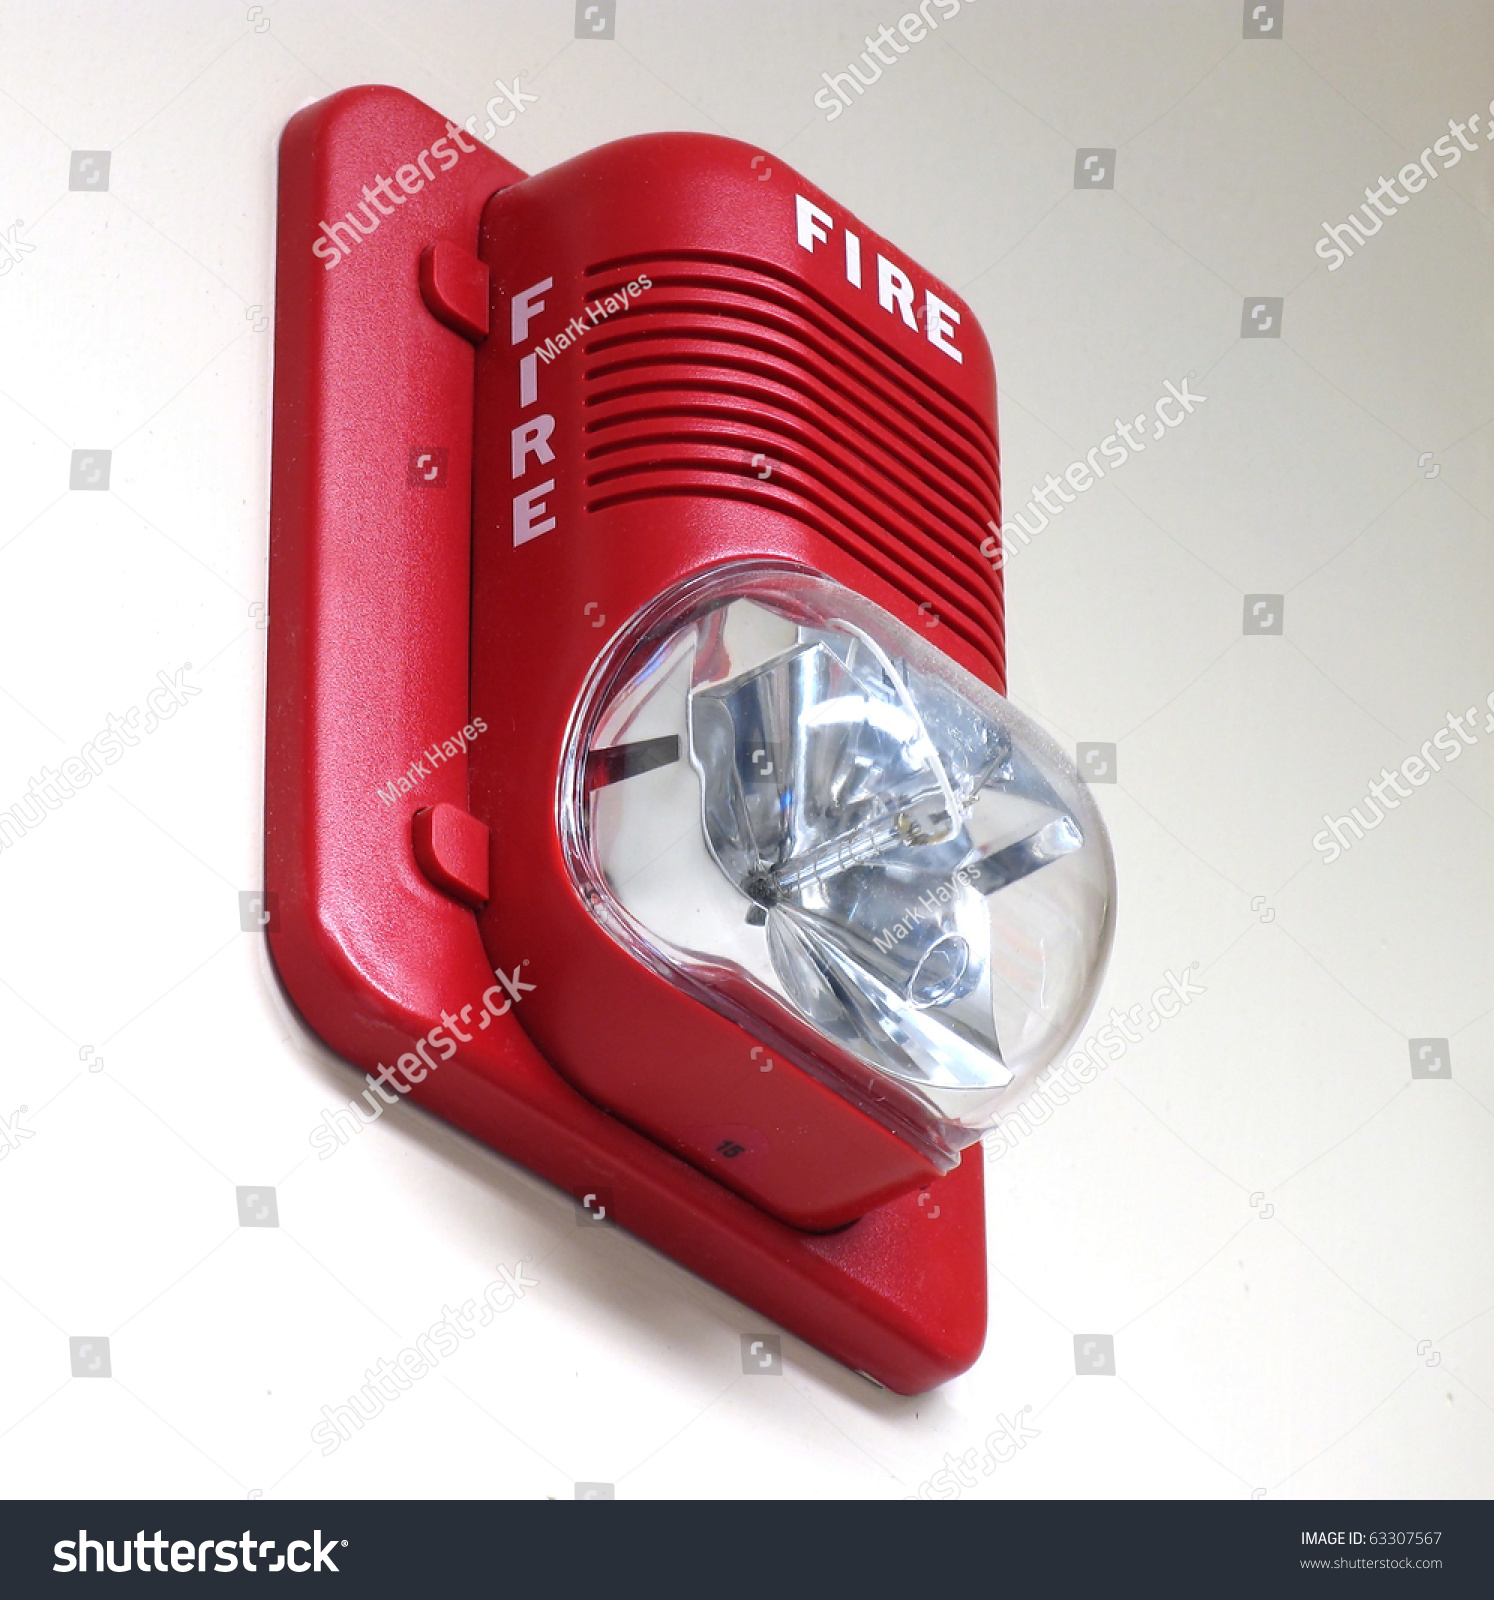 Fire Alarm Built Strobe Light Alert Stock Photo 63307567 ...